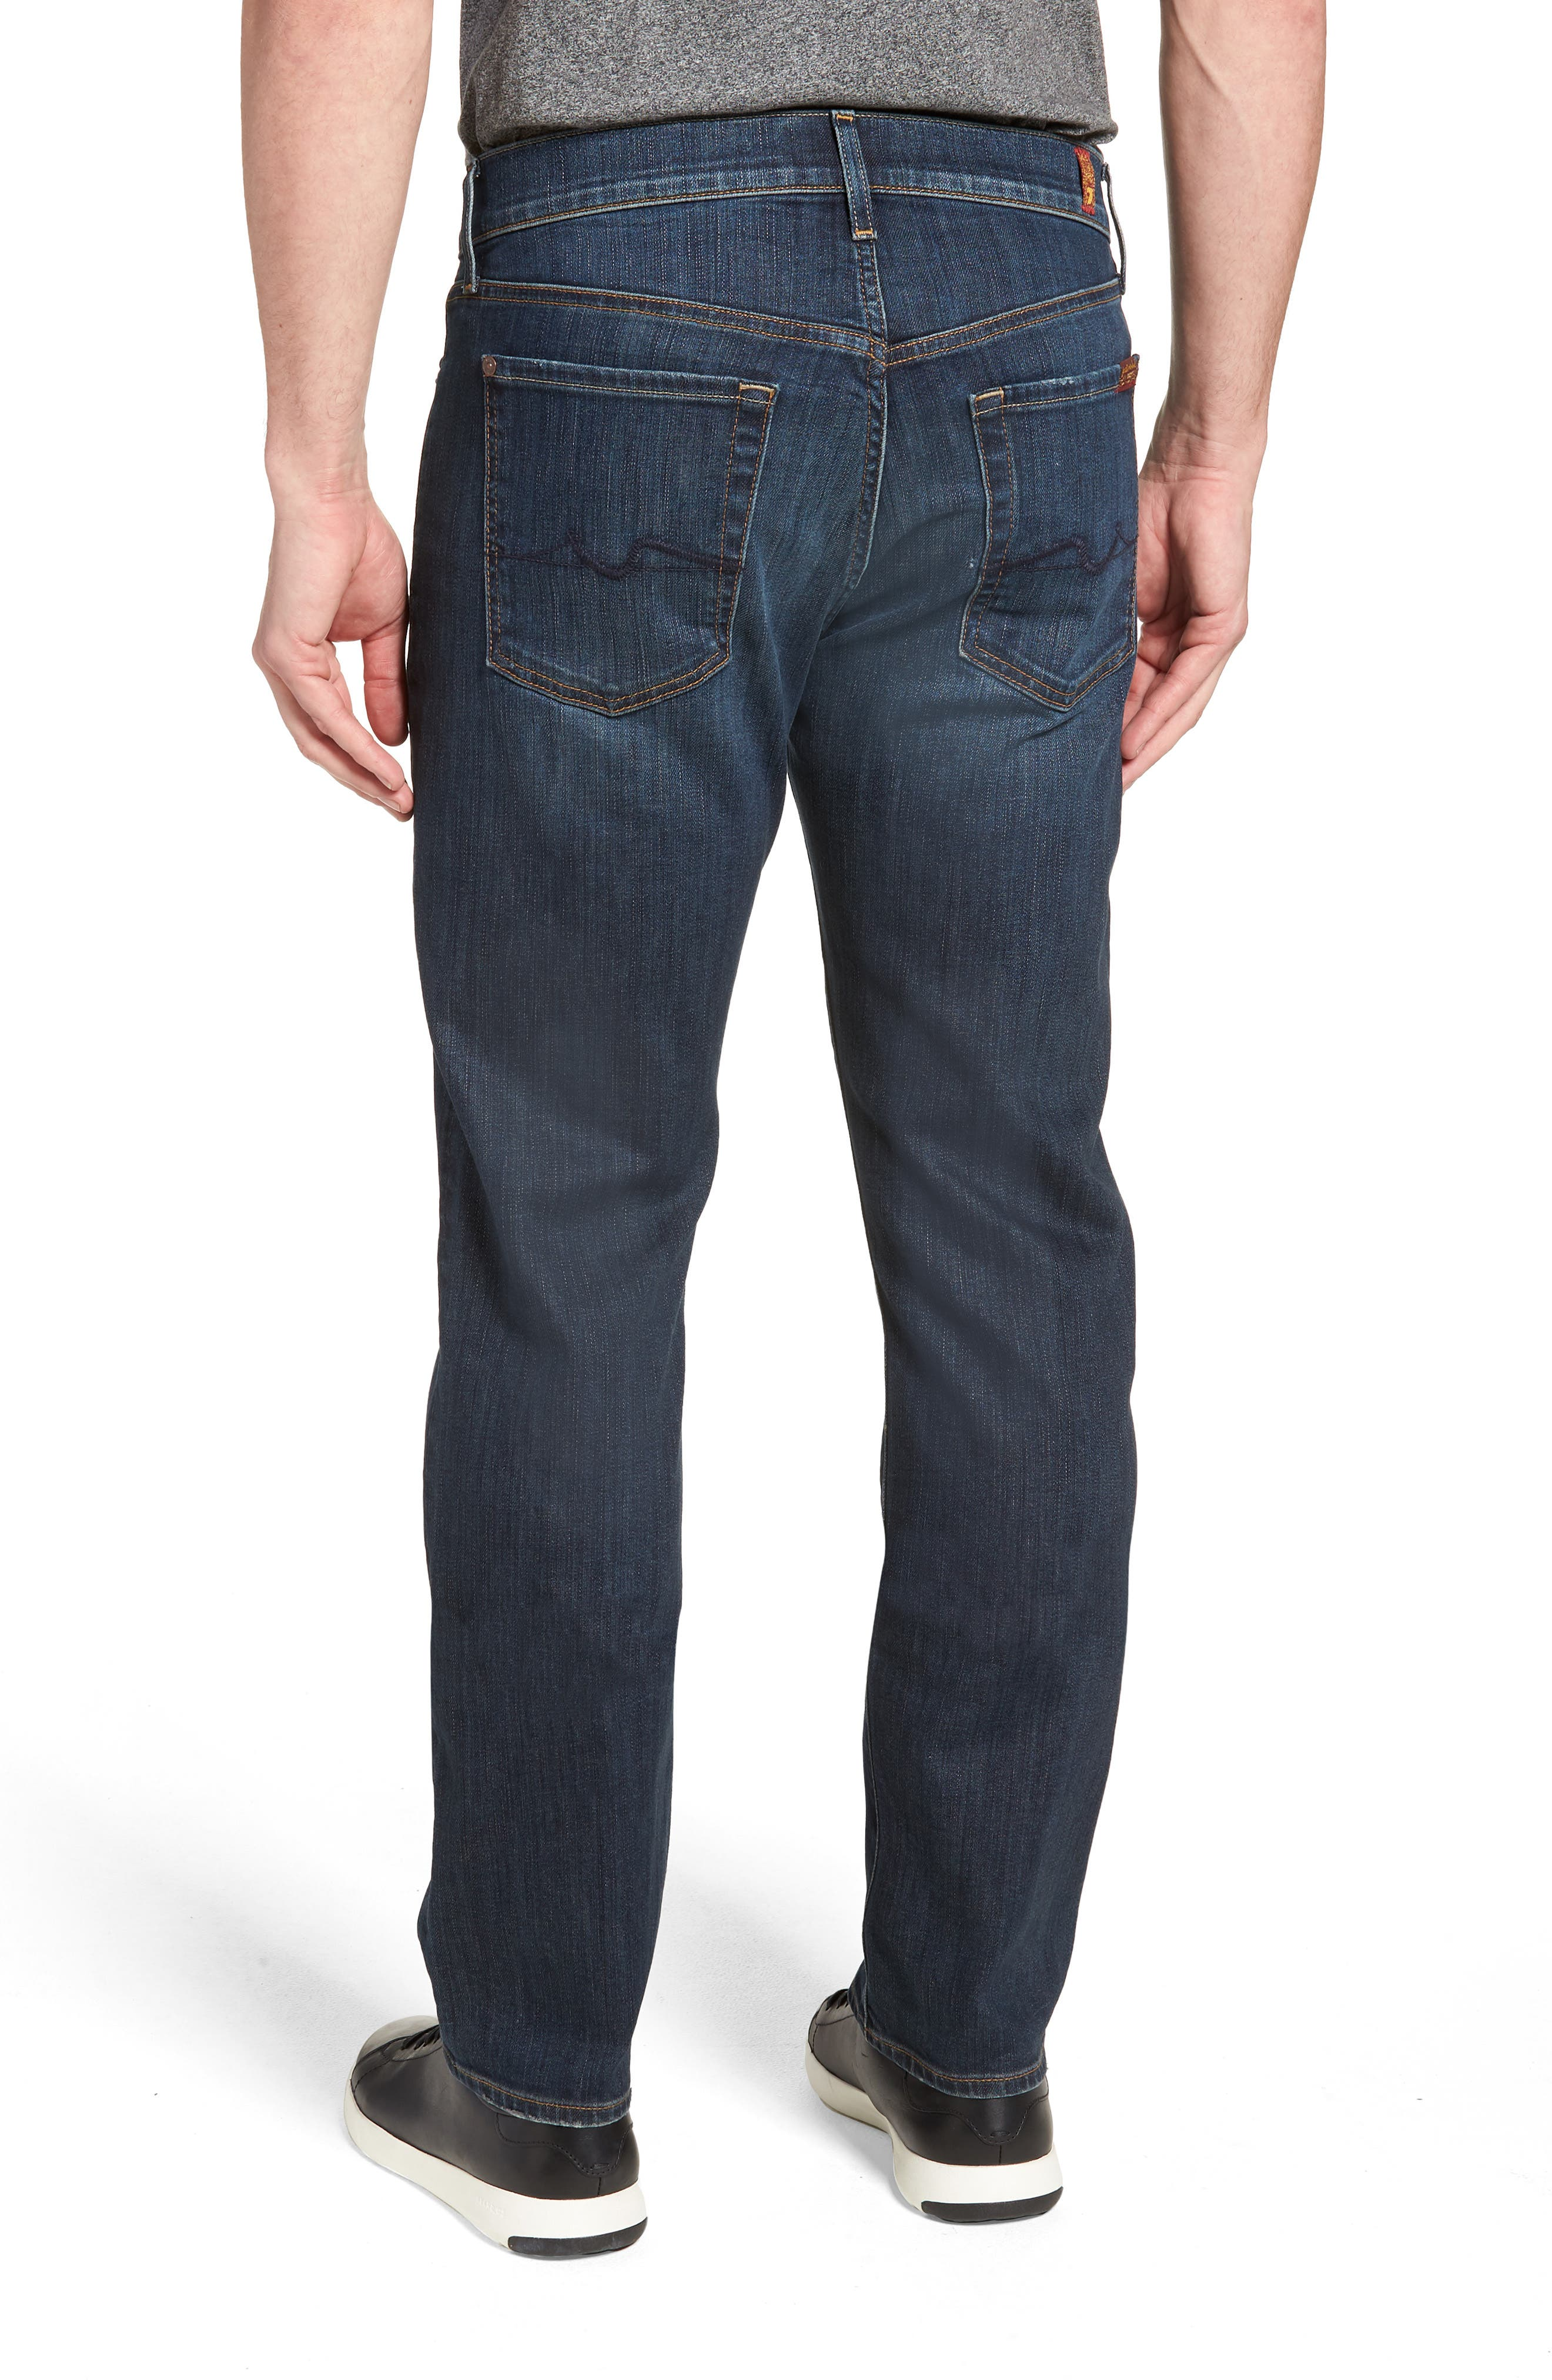 Luxe Performance Standard Straight Leg Jeans,                             Alternate thumbnail 2, color,                             LUXE PERFORMANCE YELM